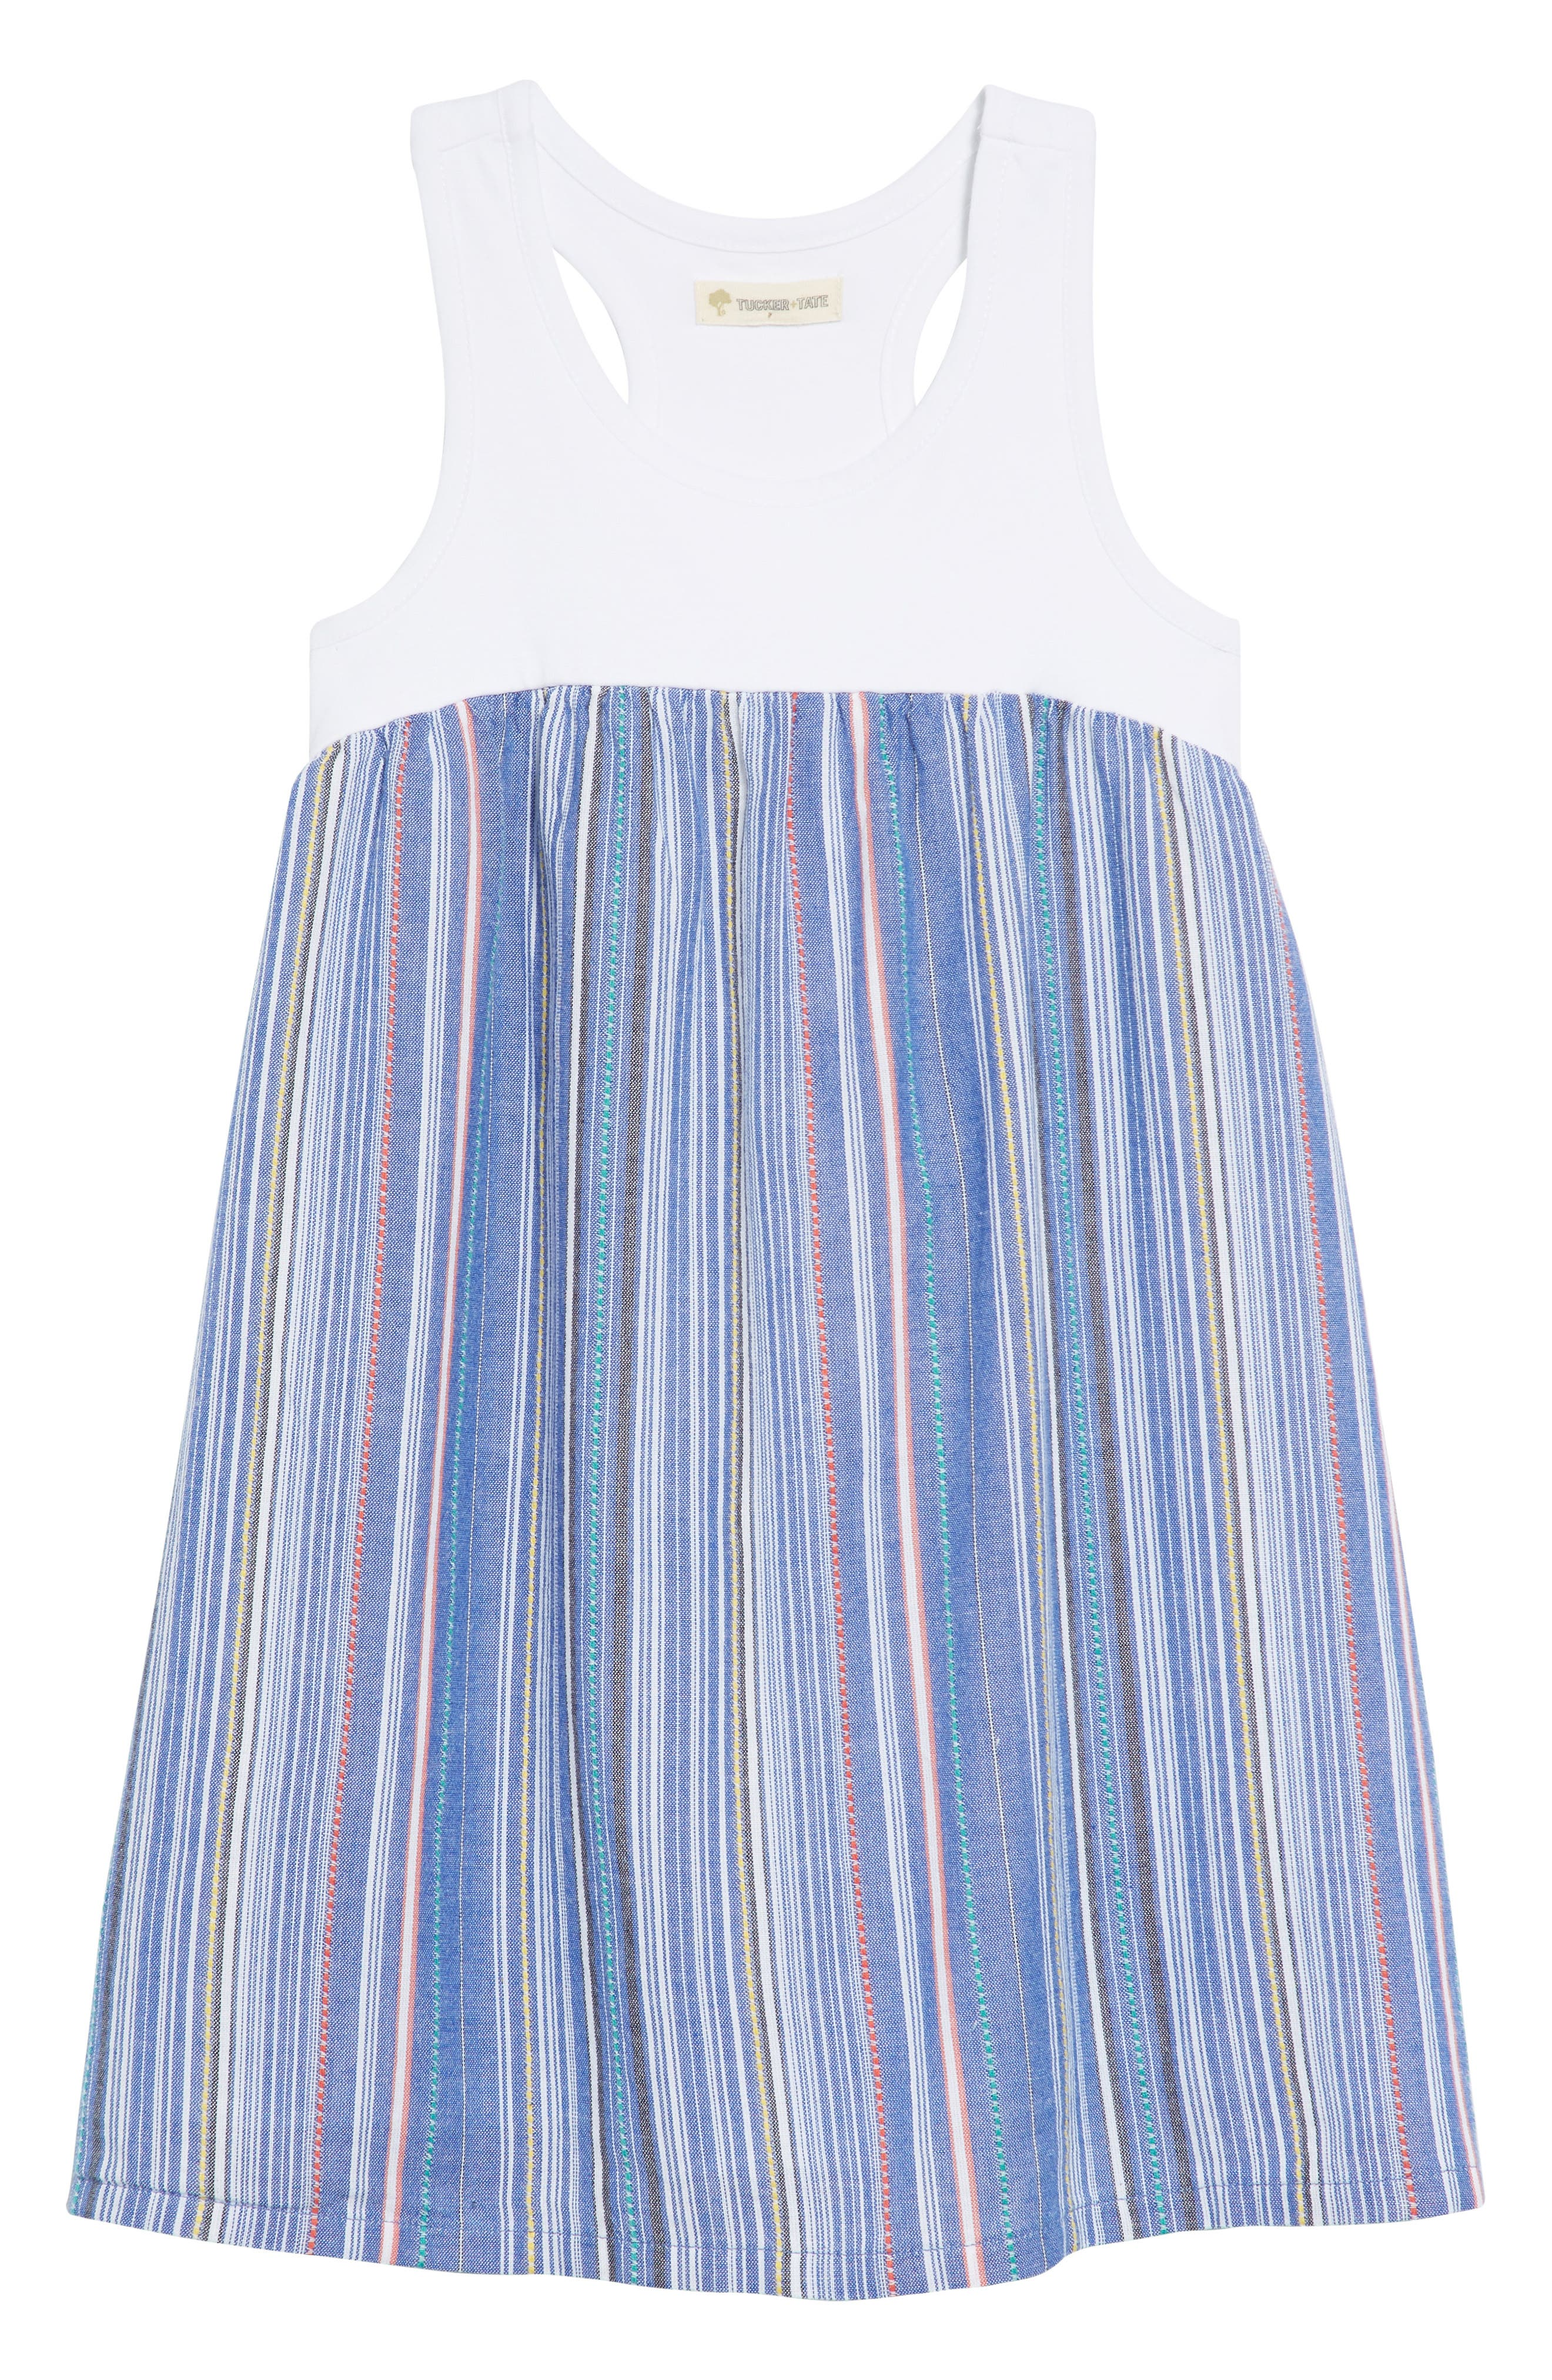 Tucker + Tate Racerback Tank Dress (Toddler Girls, Little Girls & Big Girls)